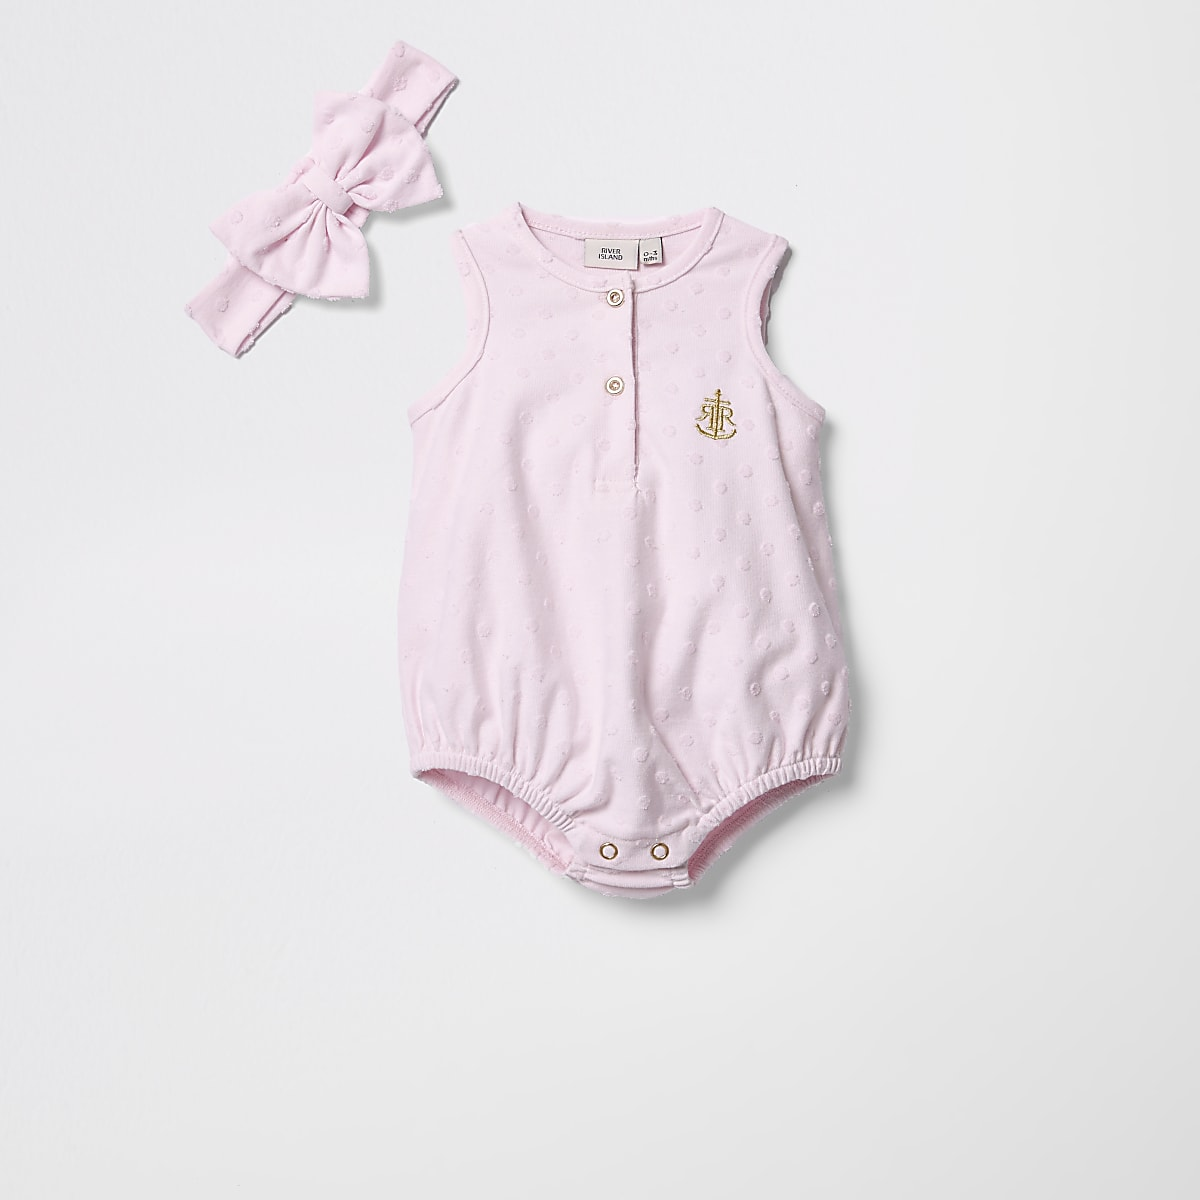 Baby pink textured romper with headband